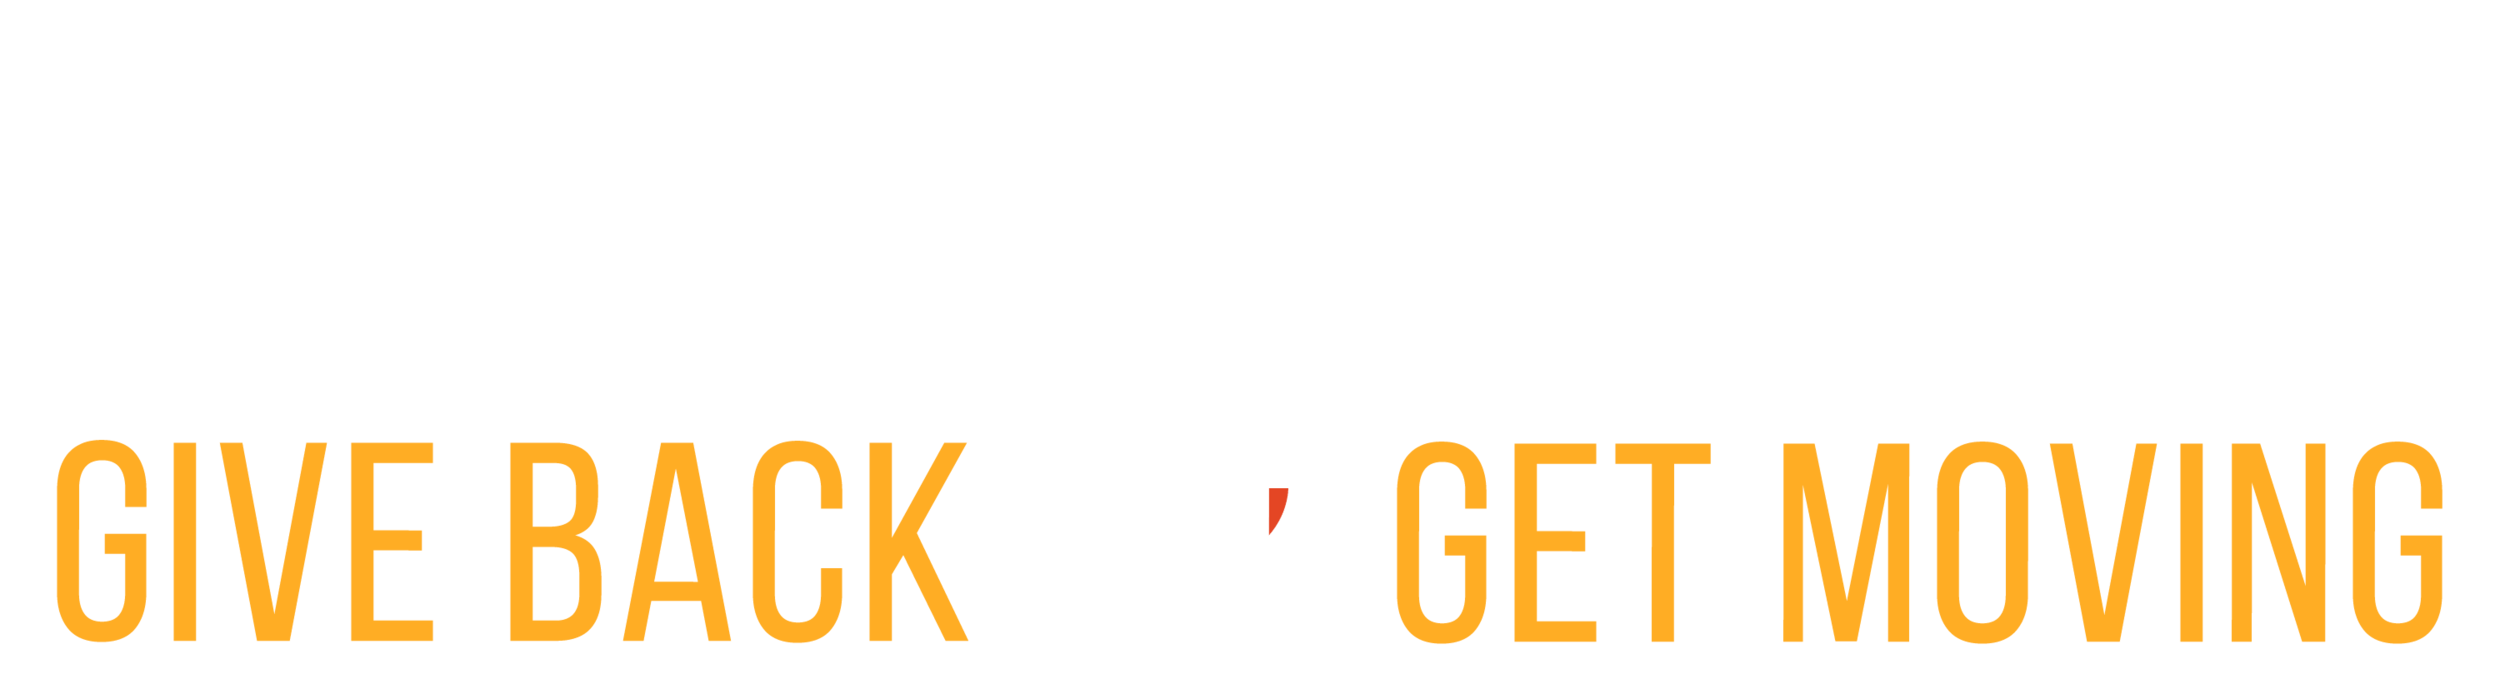 turkey_logo.png